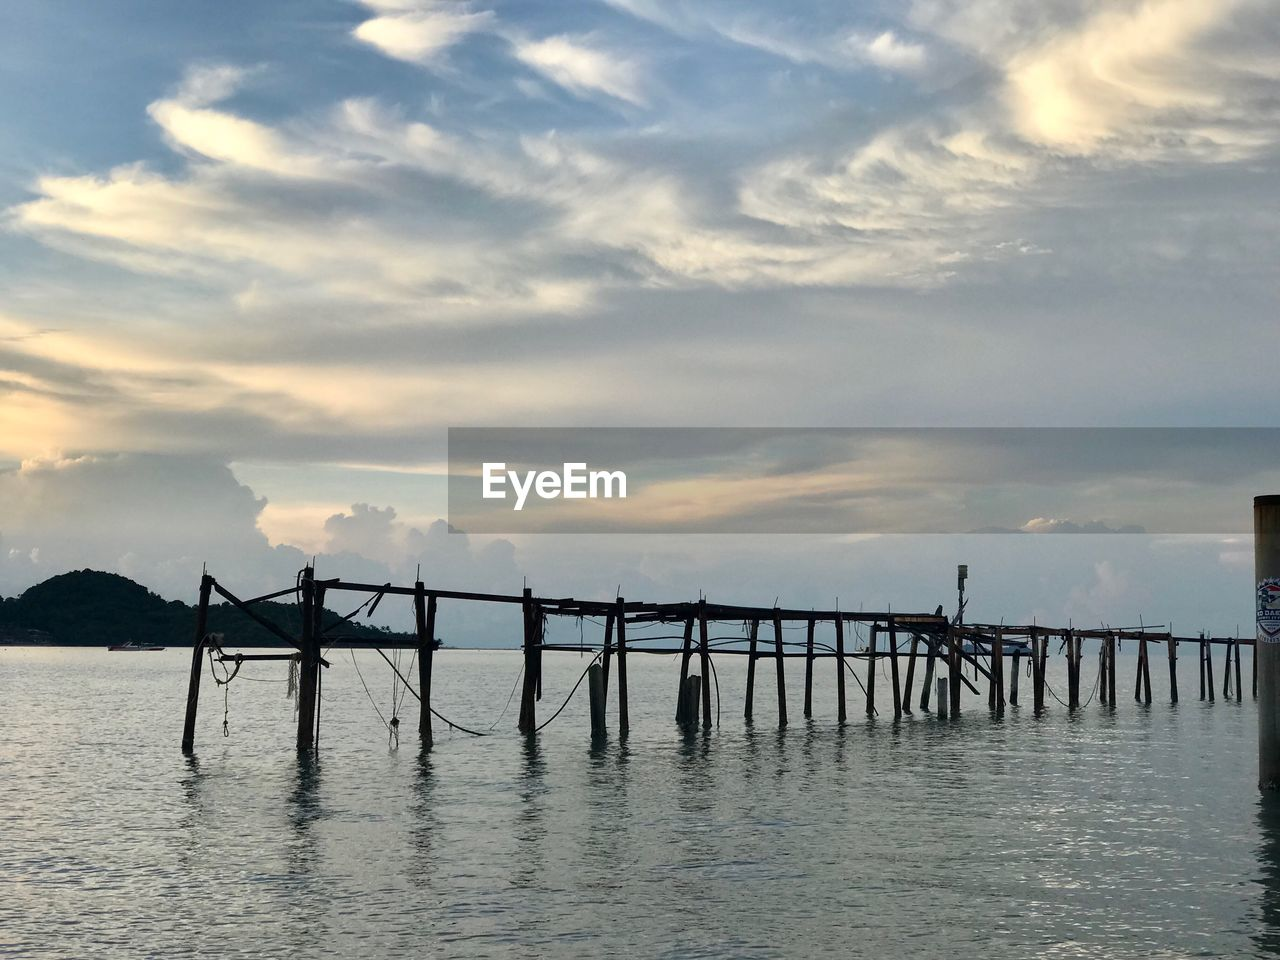 cloud - sky, sky, water, sunset, beauty in nature, scenics - nature, waterfront, tranquil scene, tranquility, nature, architecture, silhouette, built structure, pier, sea, connection, bridge, non-urban scene, no people, bridge - man made structure, outdoors, wooden post